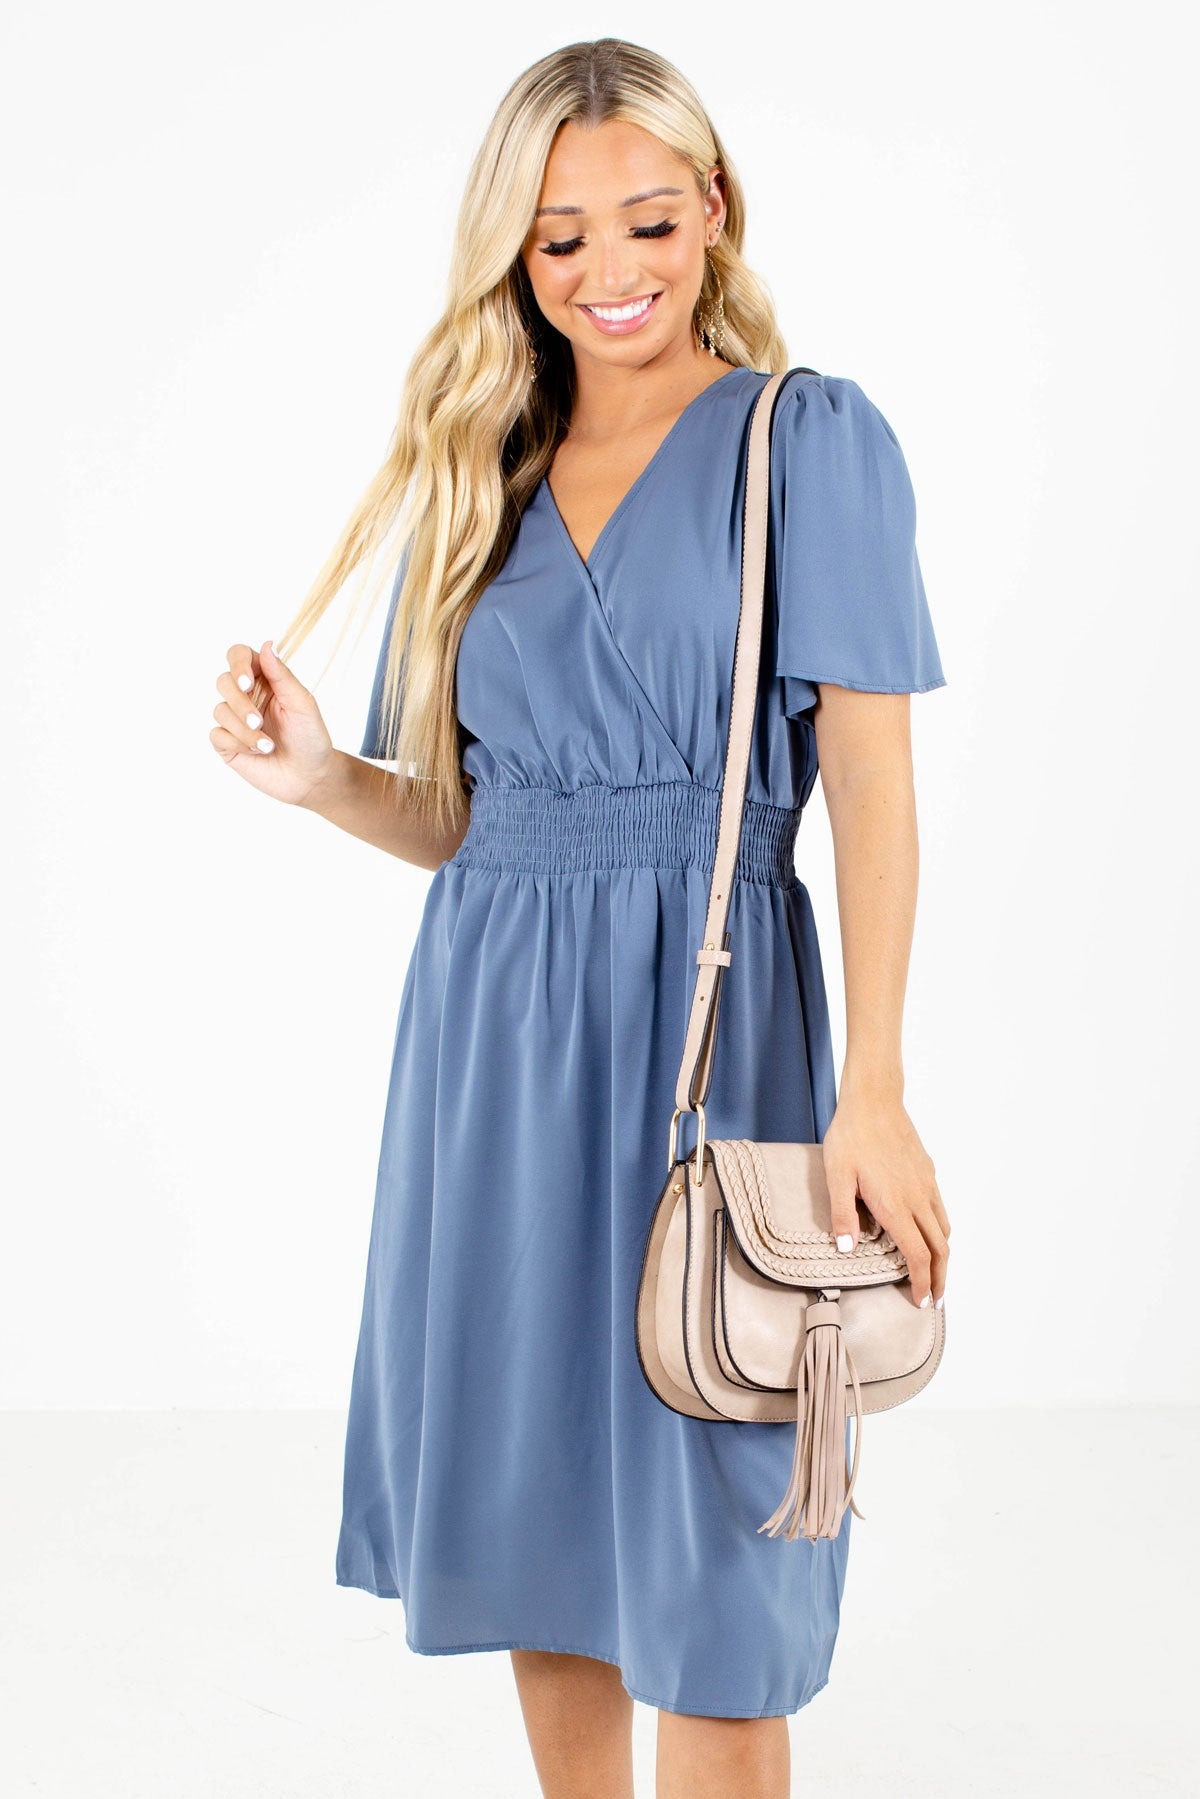 Blue Faux Wrap Bodice Boutique Knee-Length Dresses for Women